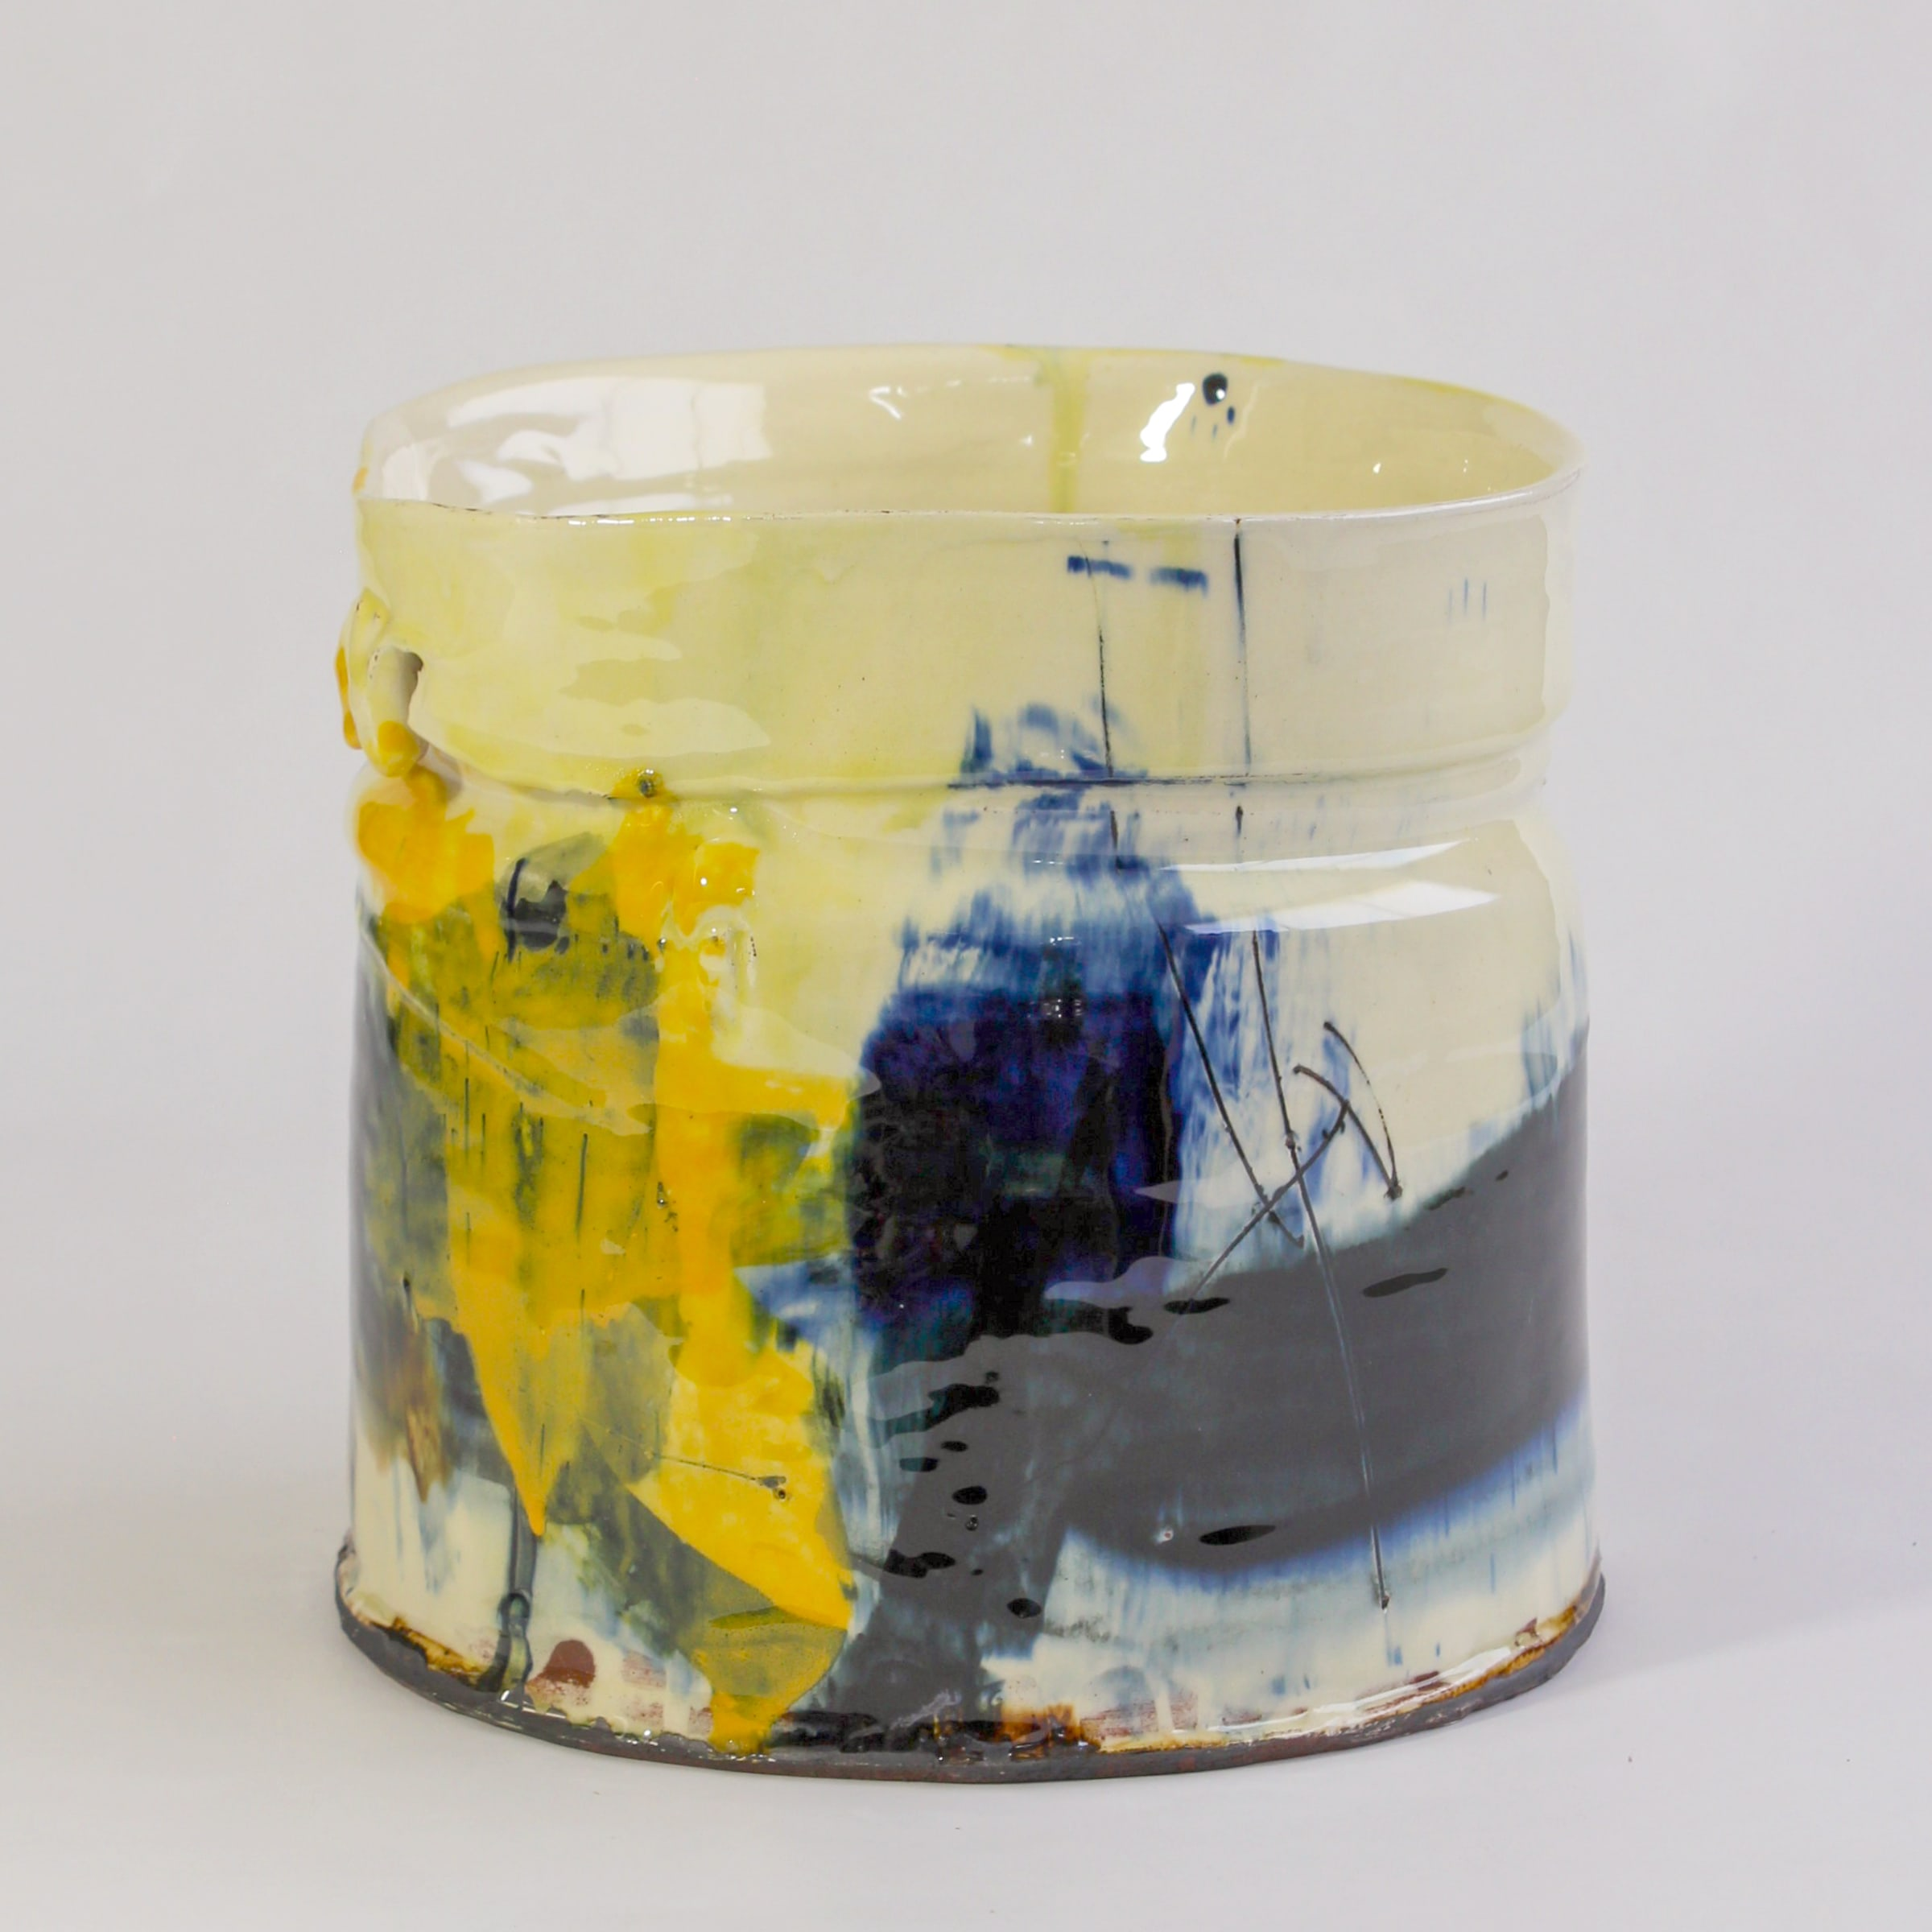 """<span class=""""link fancybox-details-link""""><a href=""""/artists/34-barry-stedman/works/7813-barry-stedman-thrown-altered-vessel-2021/"""">View Detail Page</a></span><div class=""""artist""""><strong>Barry Stedman</strong></div> <div class=""""title""""><em>Thrown altered Vessel </em>, 2021</div> <div class=""""medium"""">thrown and altered earthenware, decorated with slips</div> <div class=""""dimensions"""">18 x 21 cm</div><div class=""""price"""">£363.00</div><div class=""""copyright_line"""">Own Art: £36.30 x 10 Months, 0% APR</div>"""